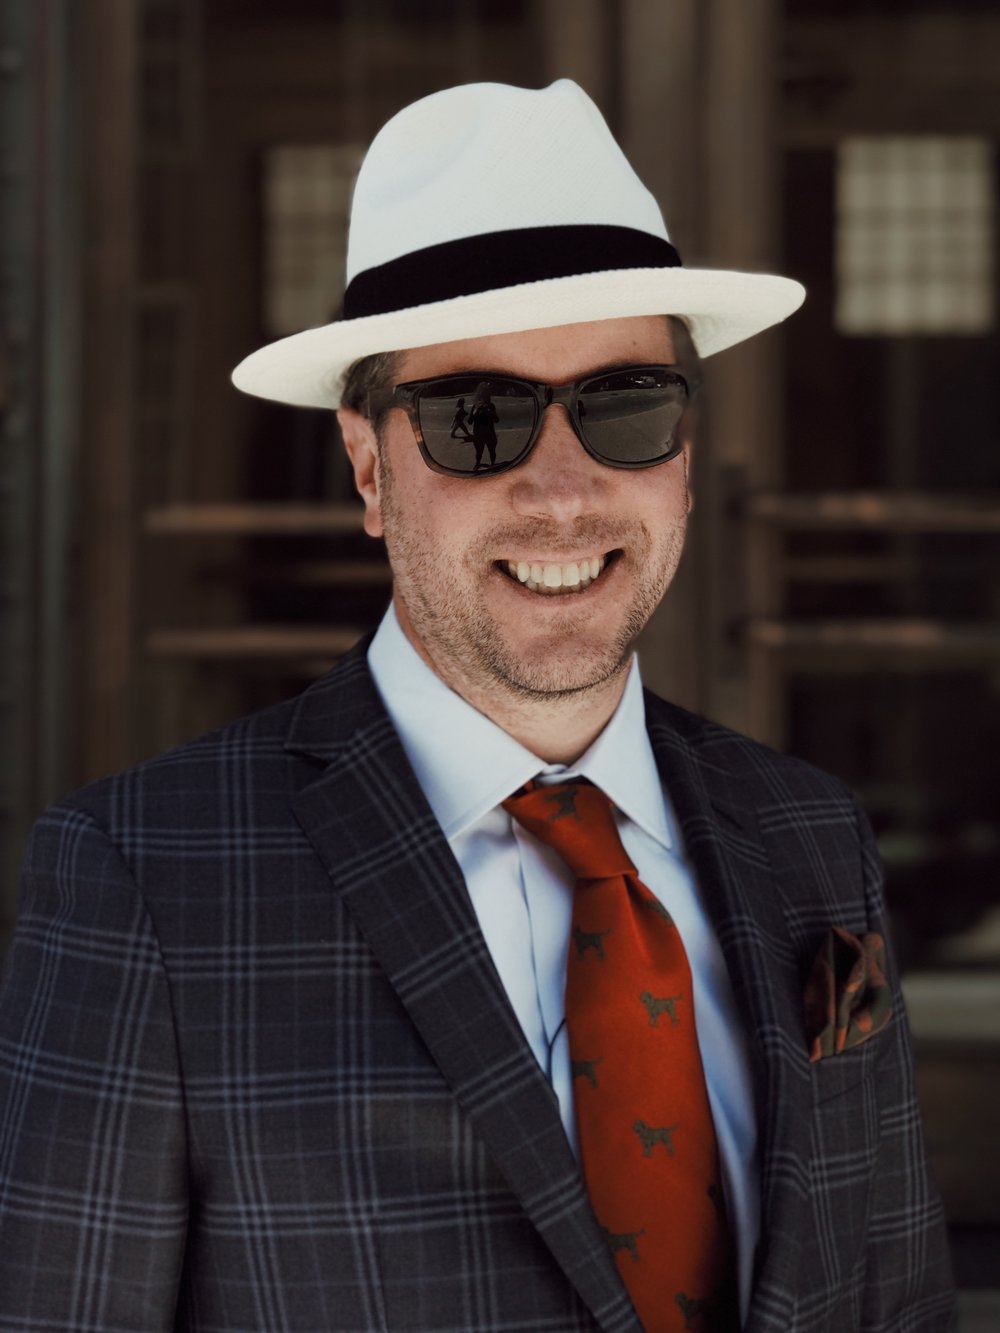 On Craig: Hat: Scala, Sunglasses: Shwood, Shirt: Ledbury, Sportcoat: BluJacket, Necktie & Pocket Square:  Seaward & Stern